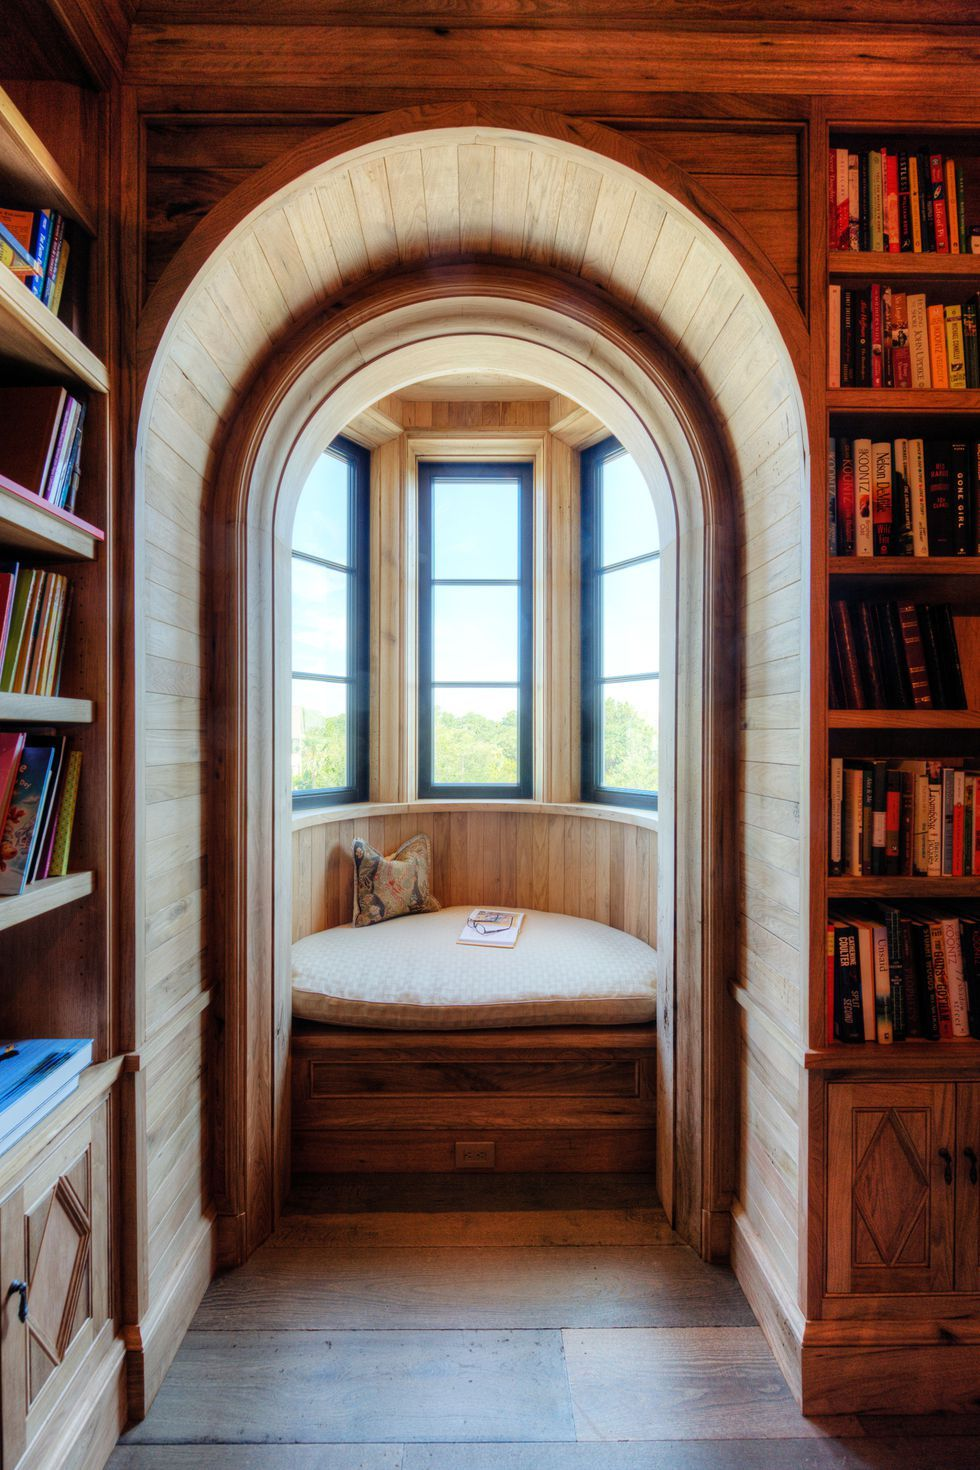 Interior Design Library Room: 45 Examples That Prove Your Books Deserve Attention